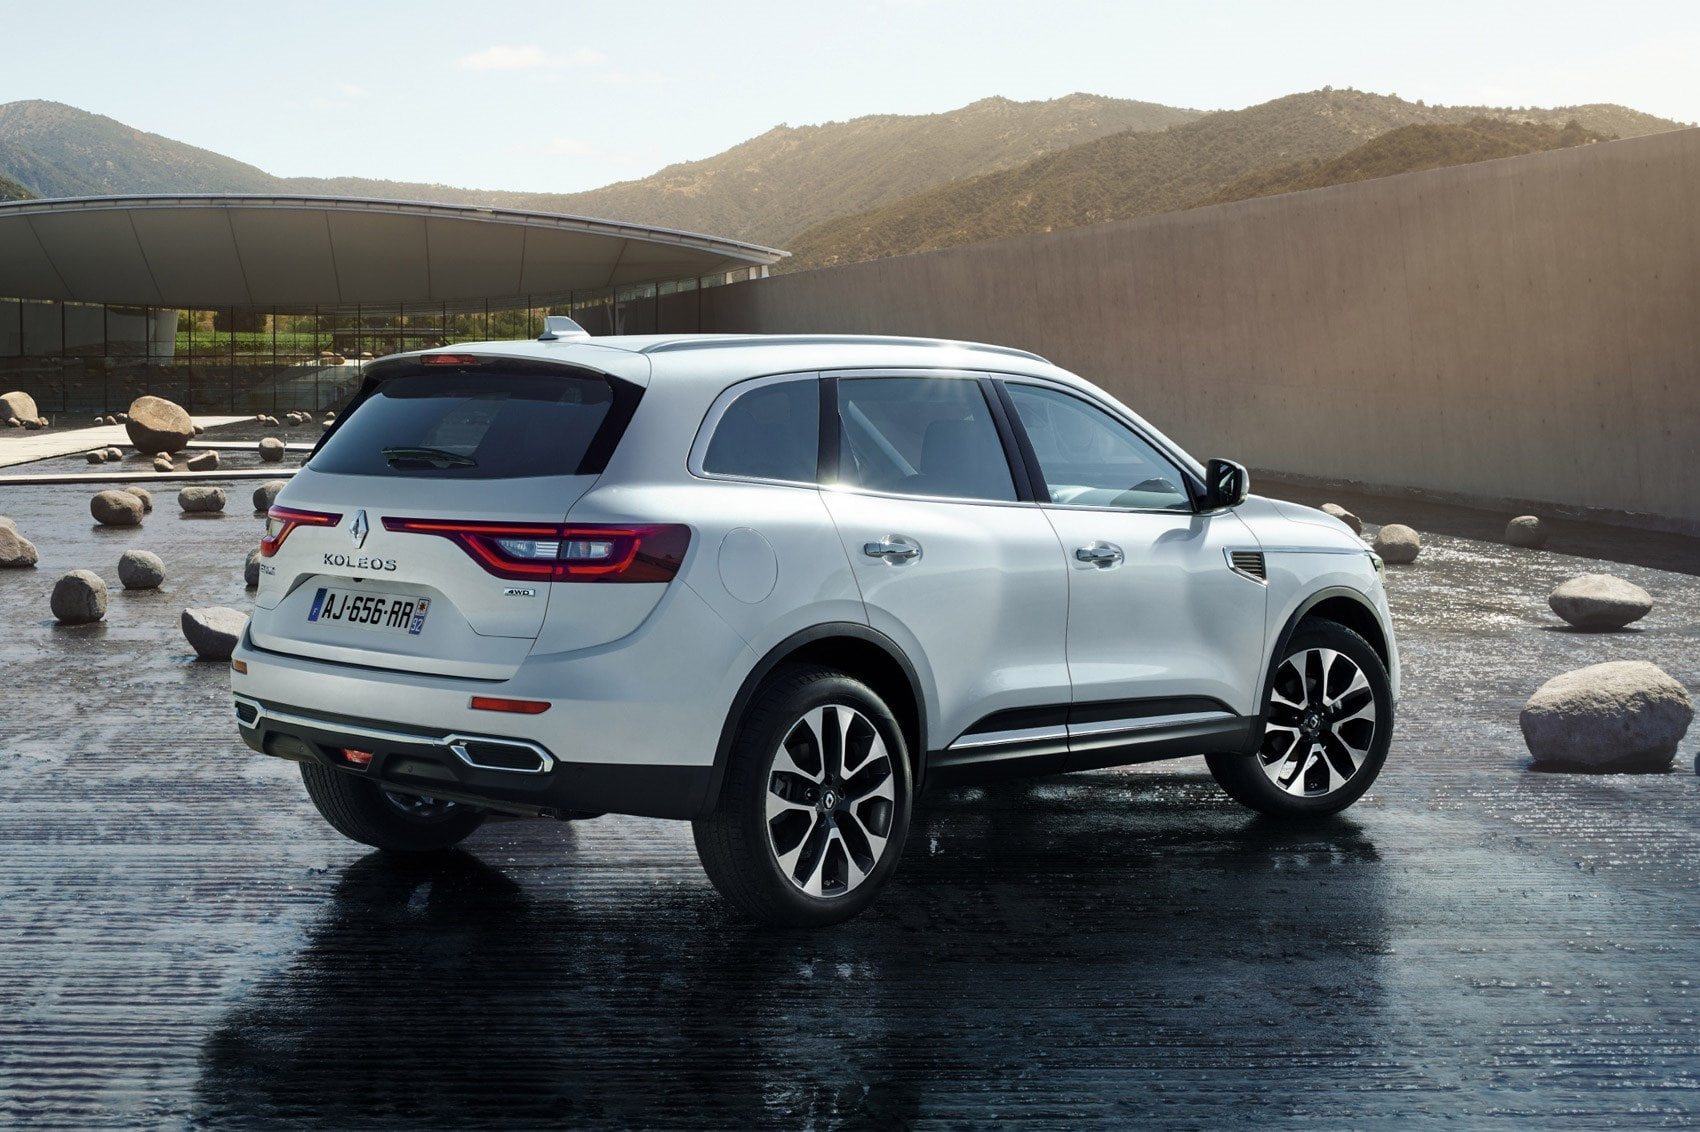 Renault Koleos 2 Backgrounds